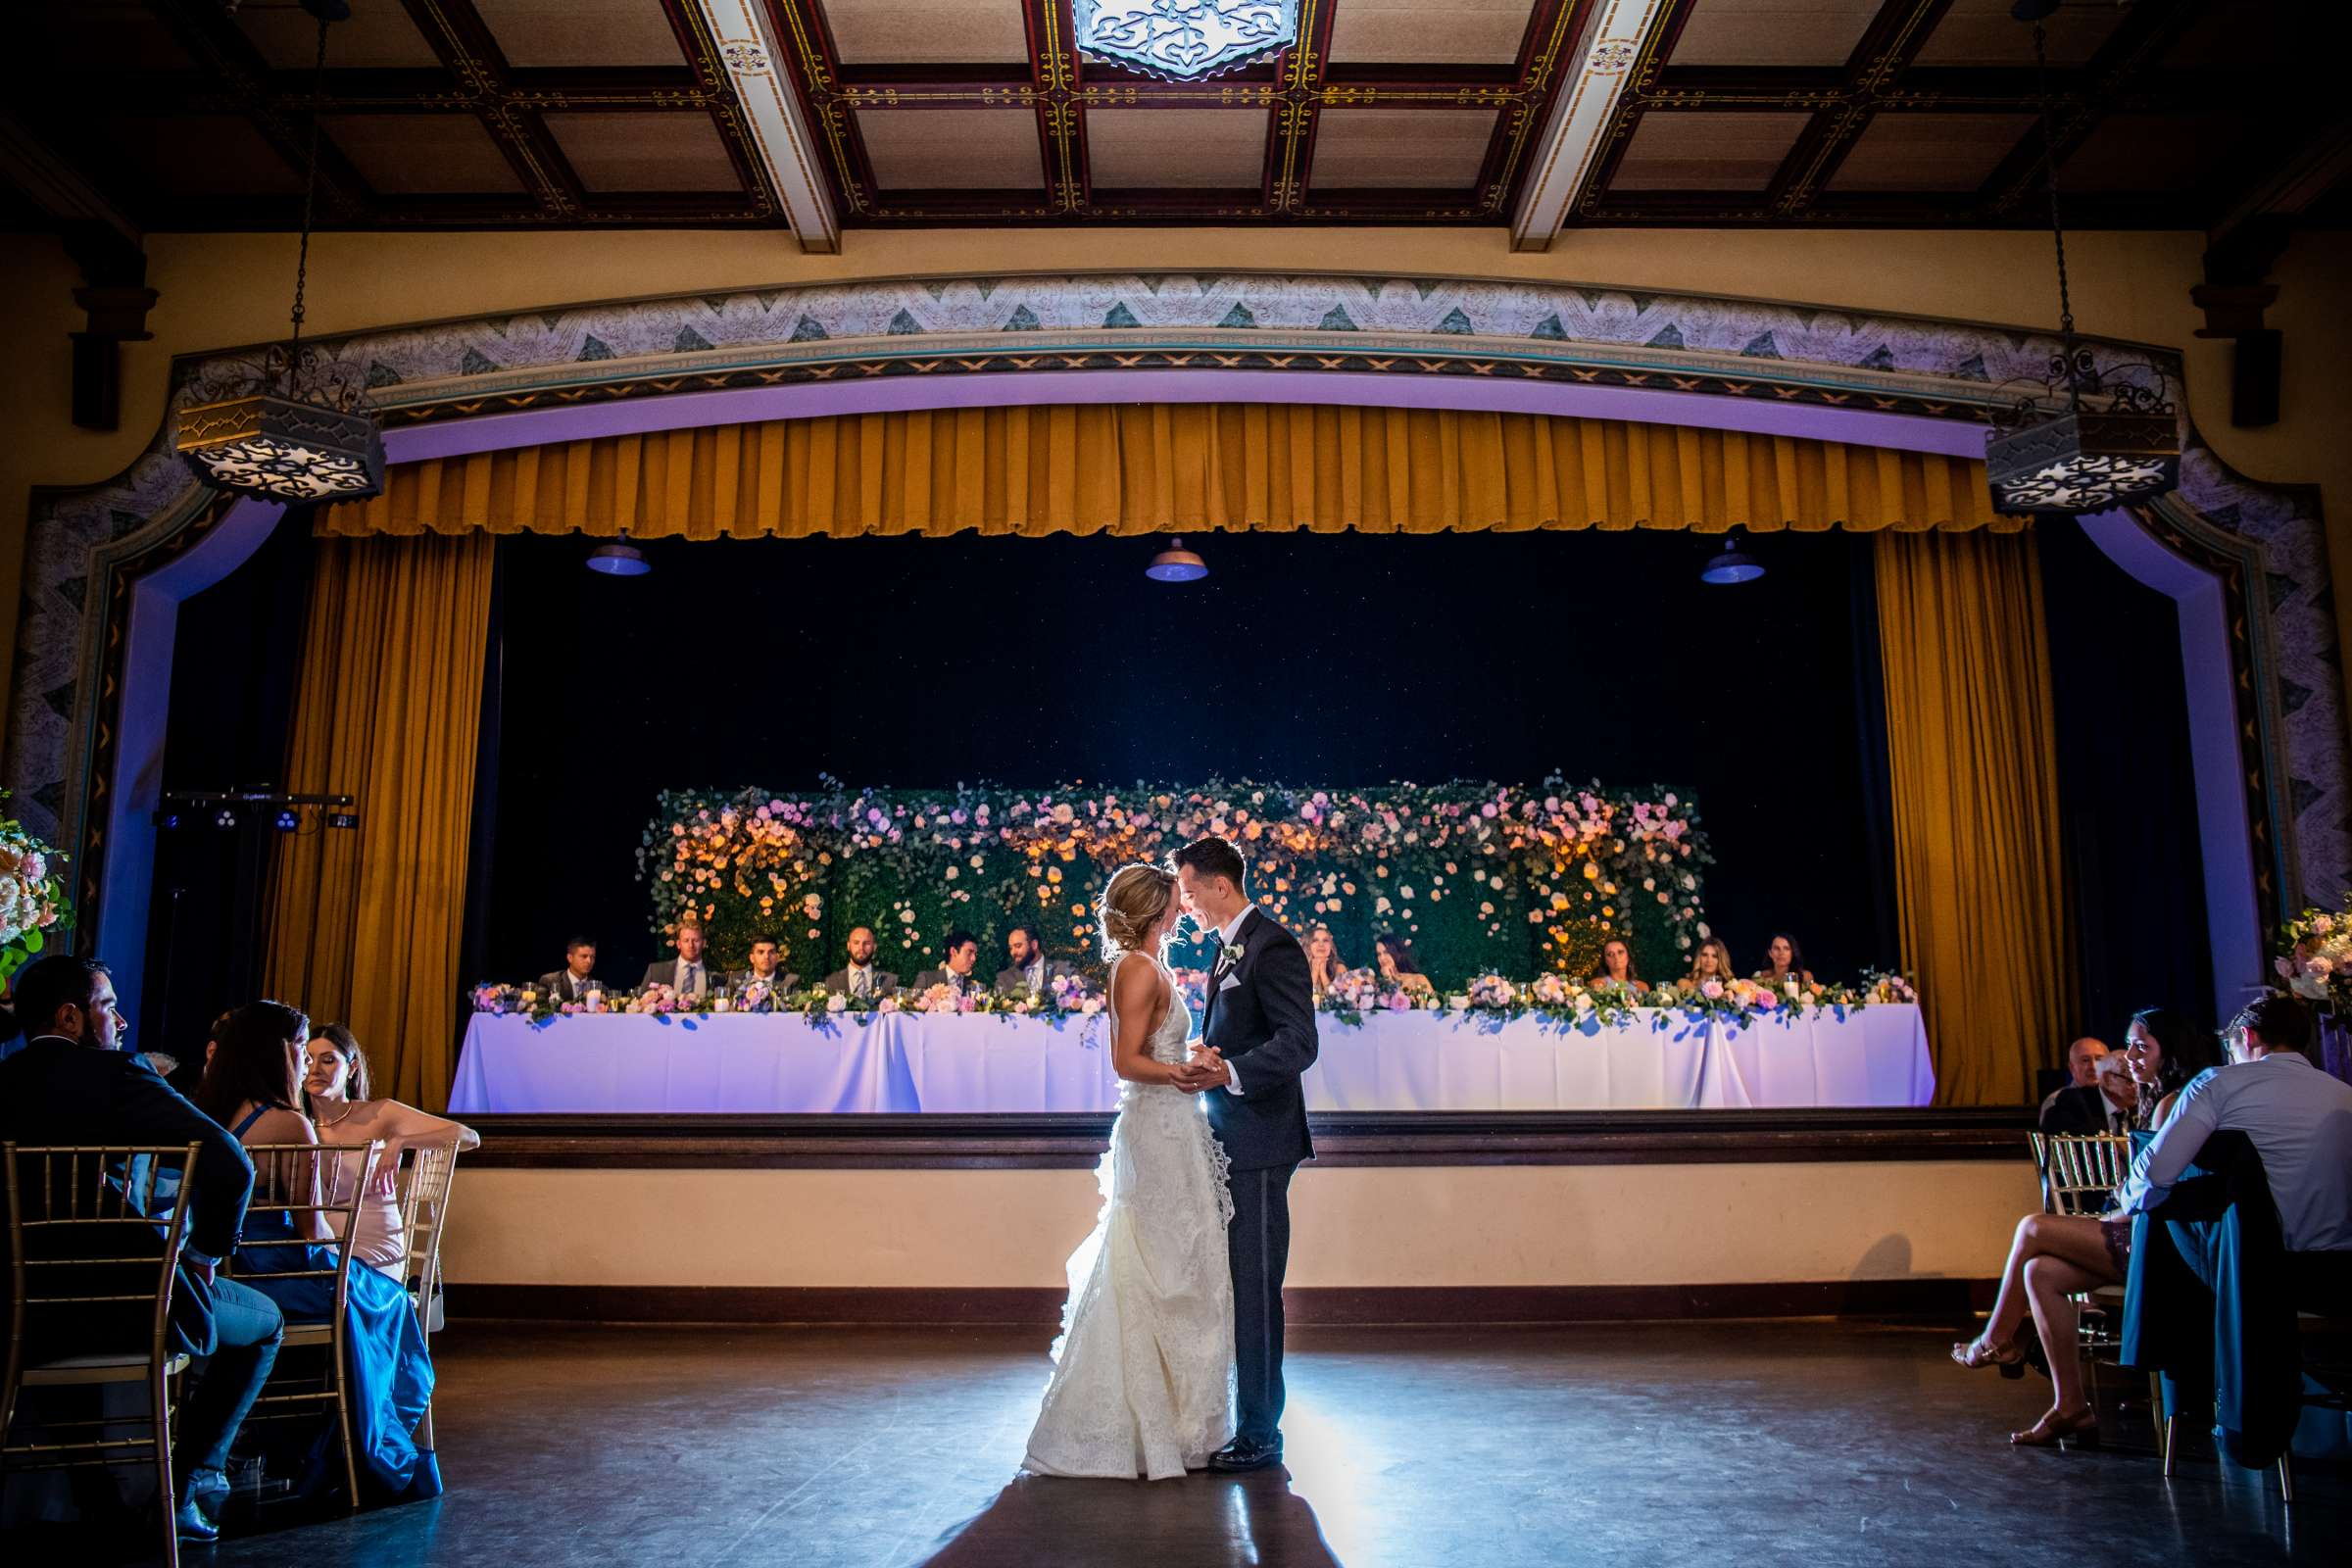 The Prado Wedding coordinated by Bliss Events, Sara and Marvin Wedding Photo #559626 by True Photography